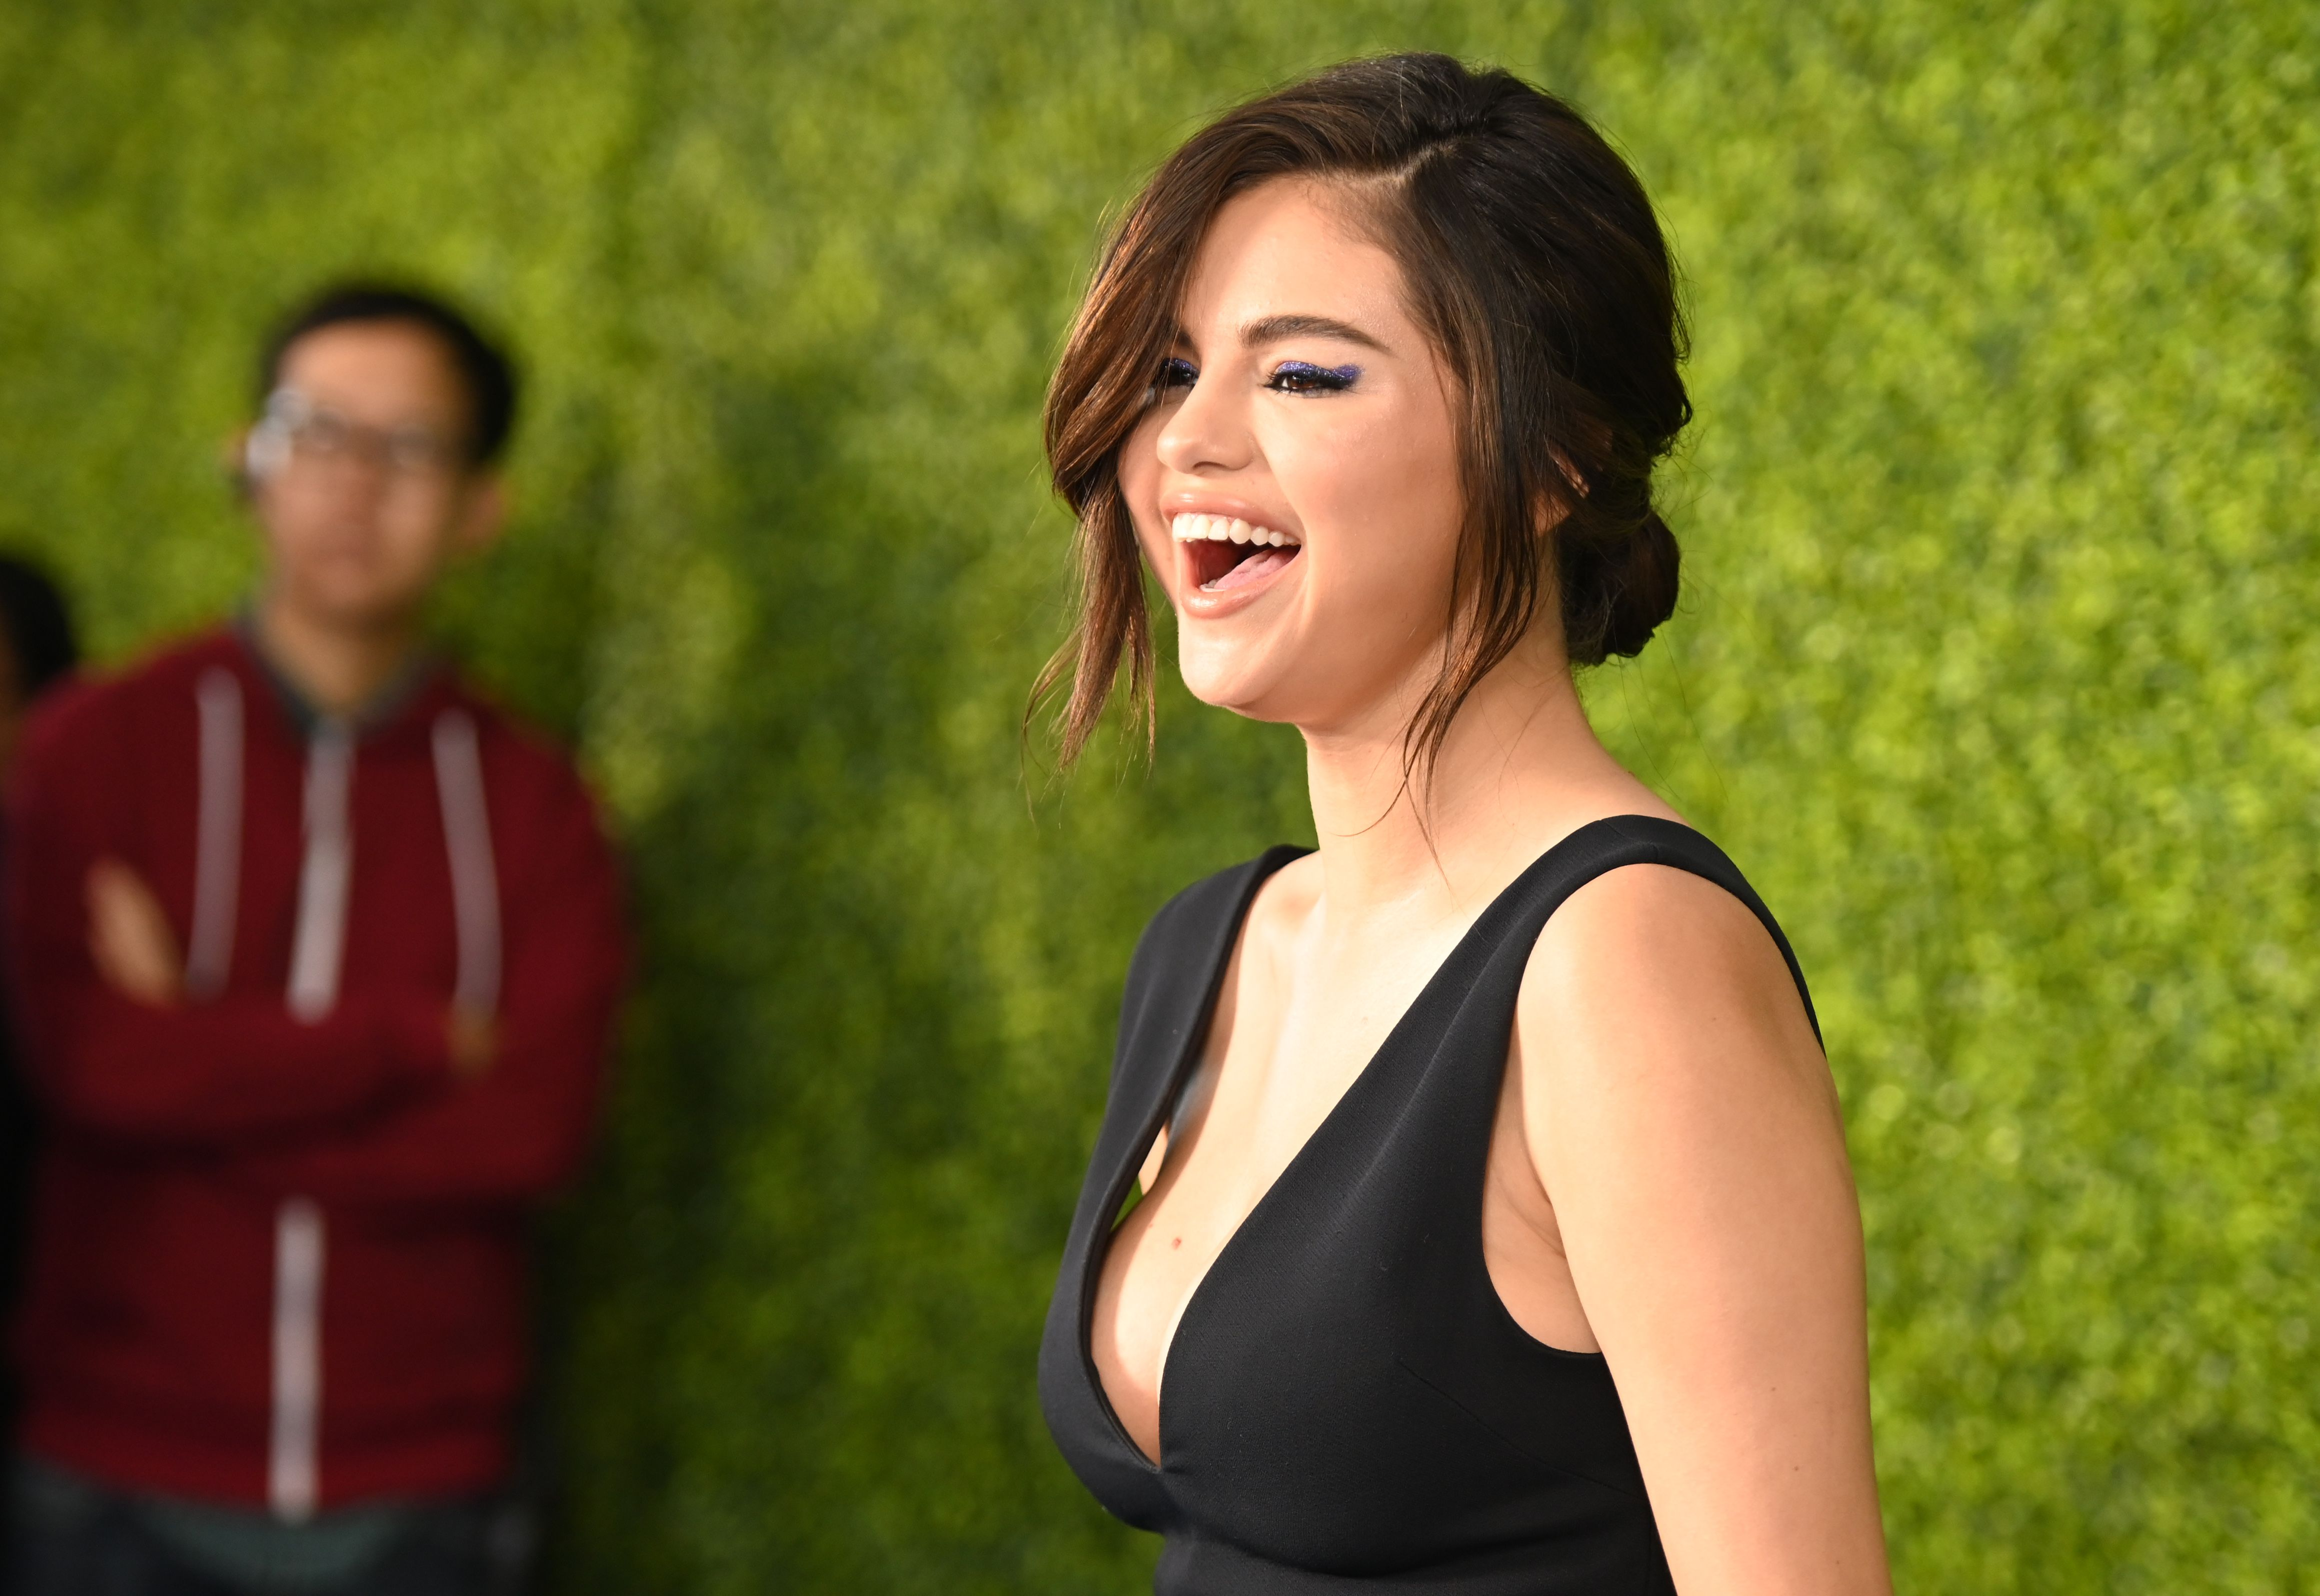 Selena Gomez Just Stepped Out for Her Cousin's Wedding Looking Amazing